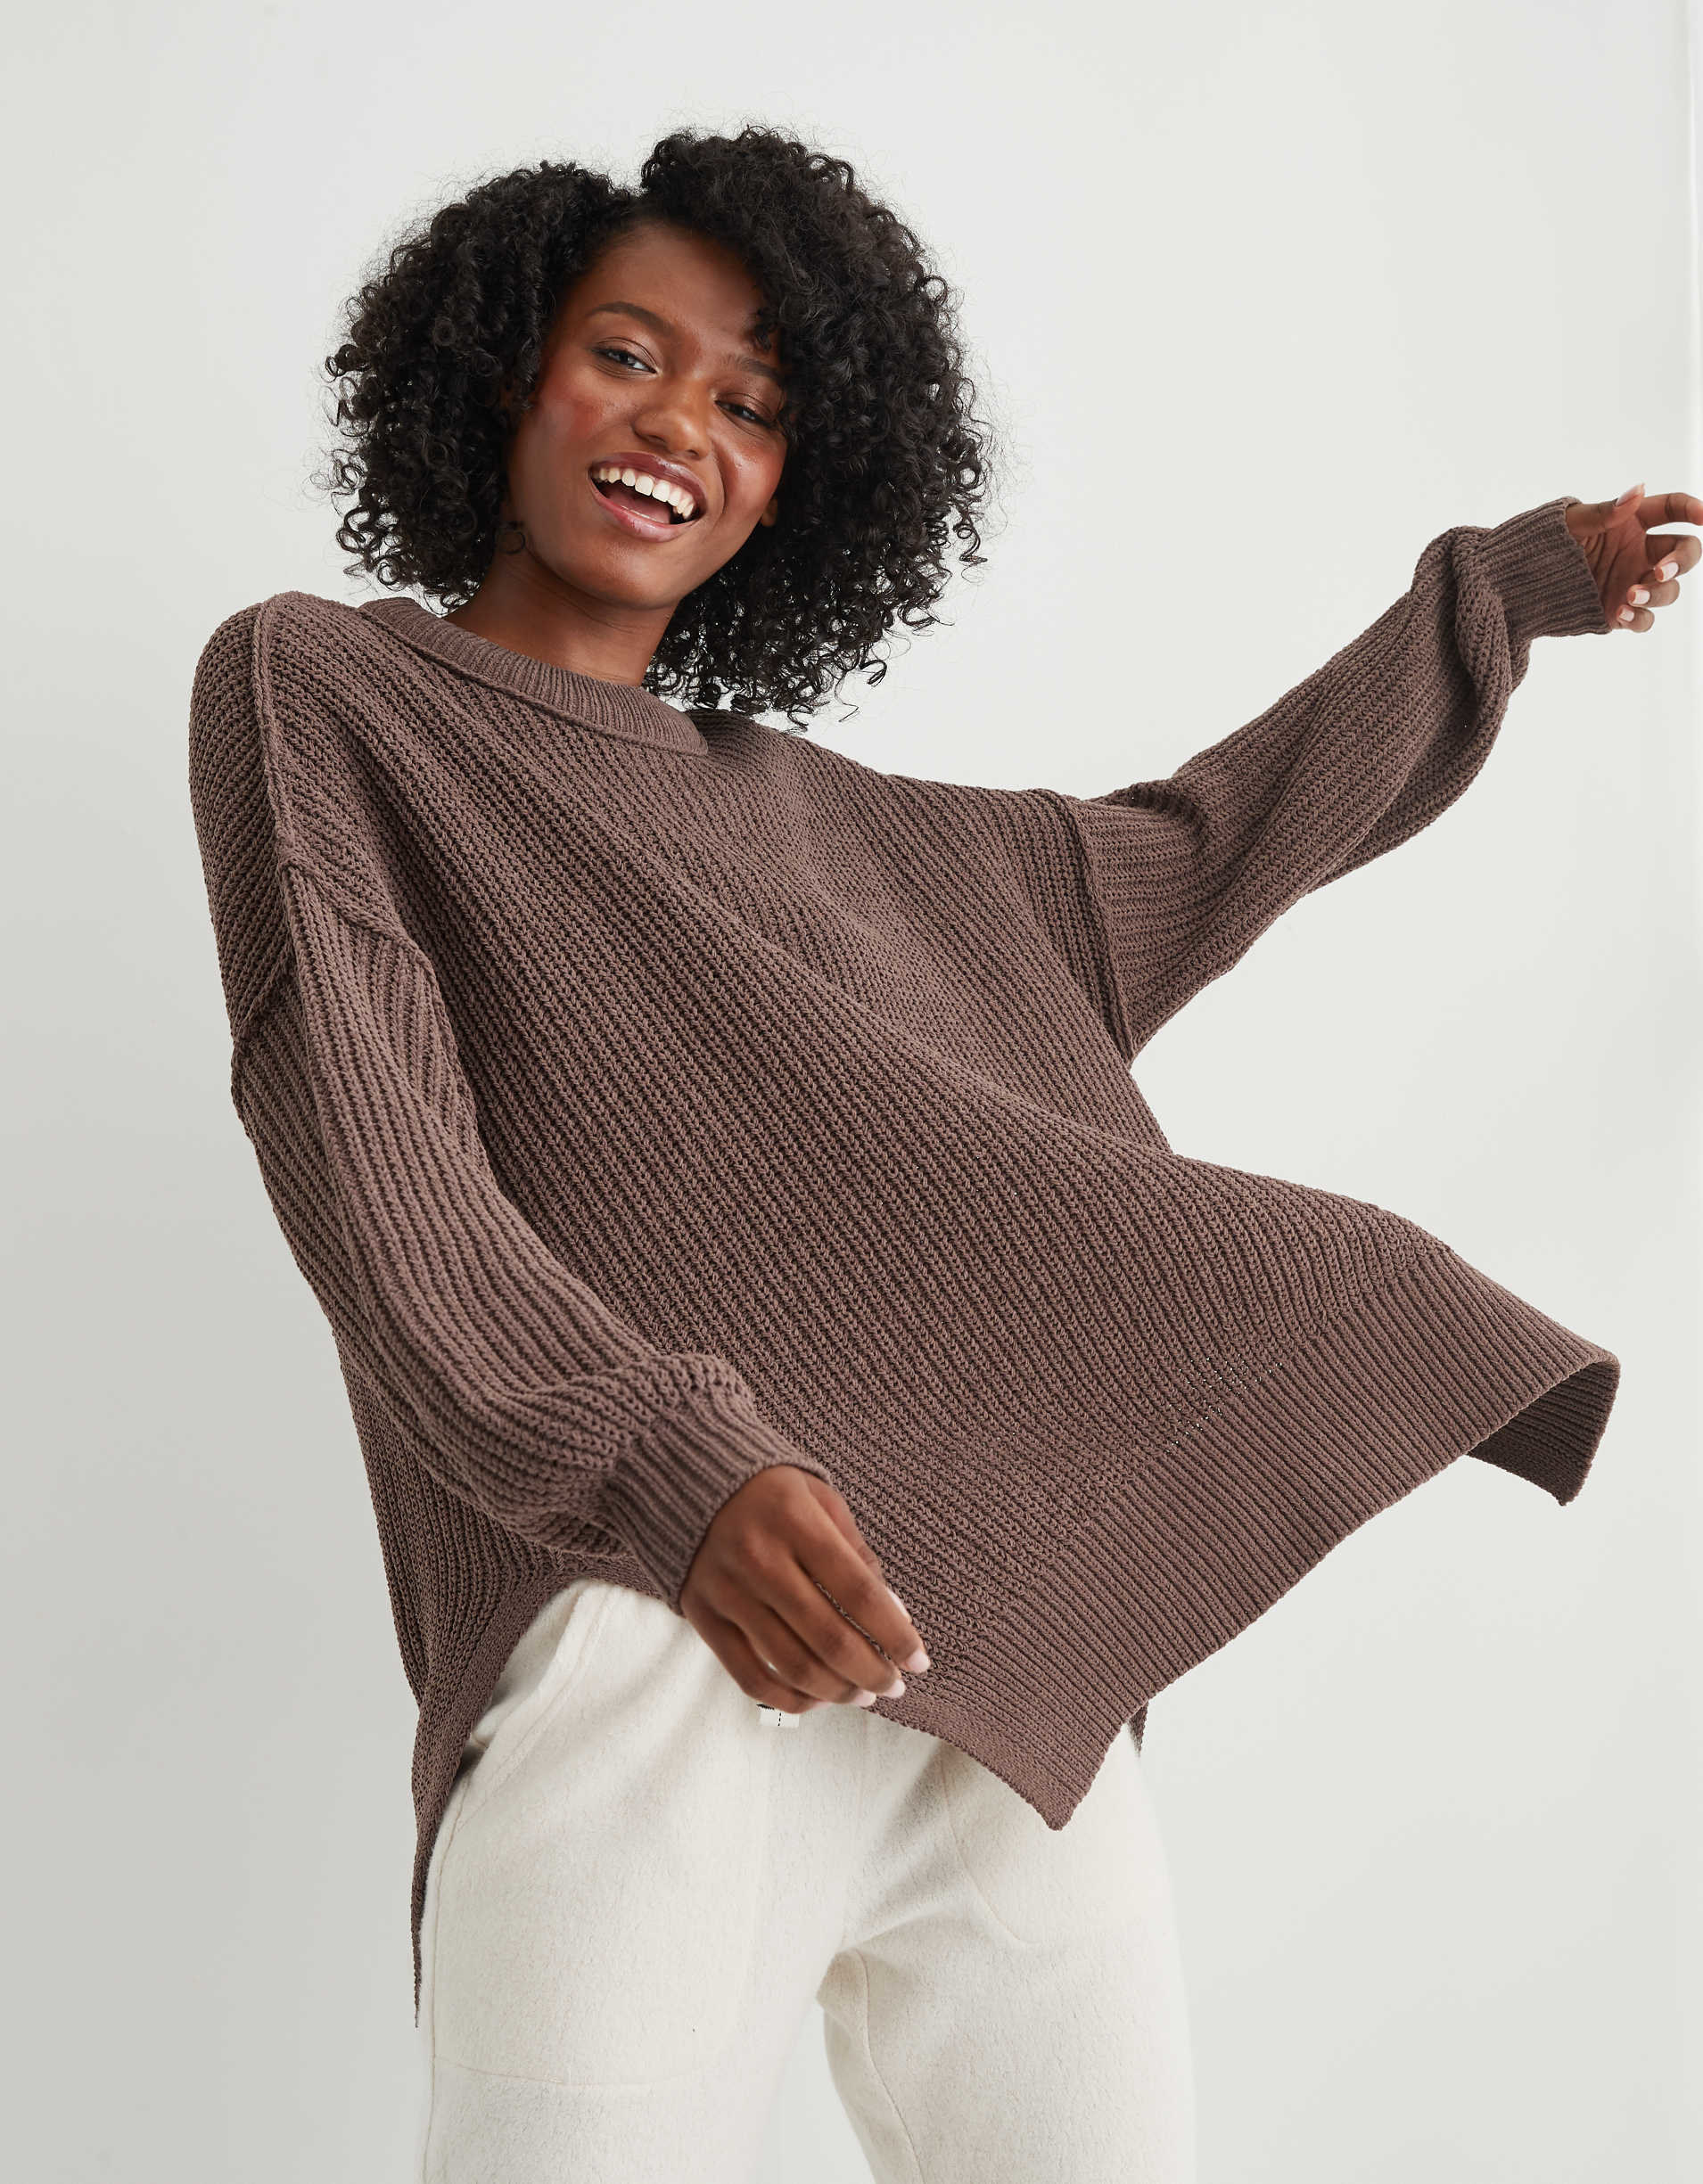 The oversized sweater with a drop shoulder, knit neckline and hems, and slits up the sides in brown